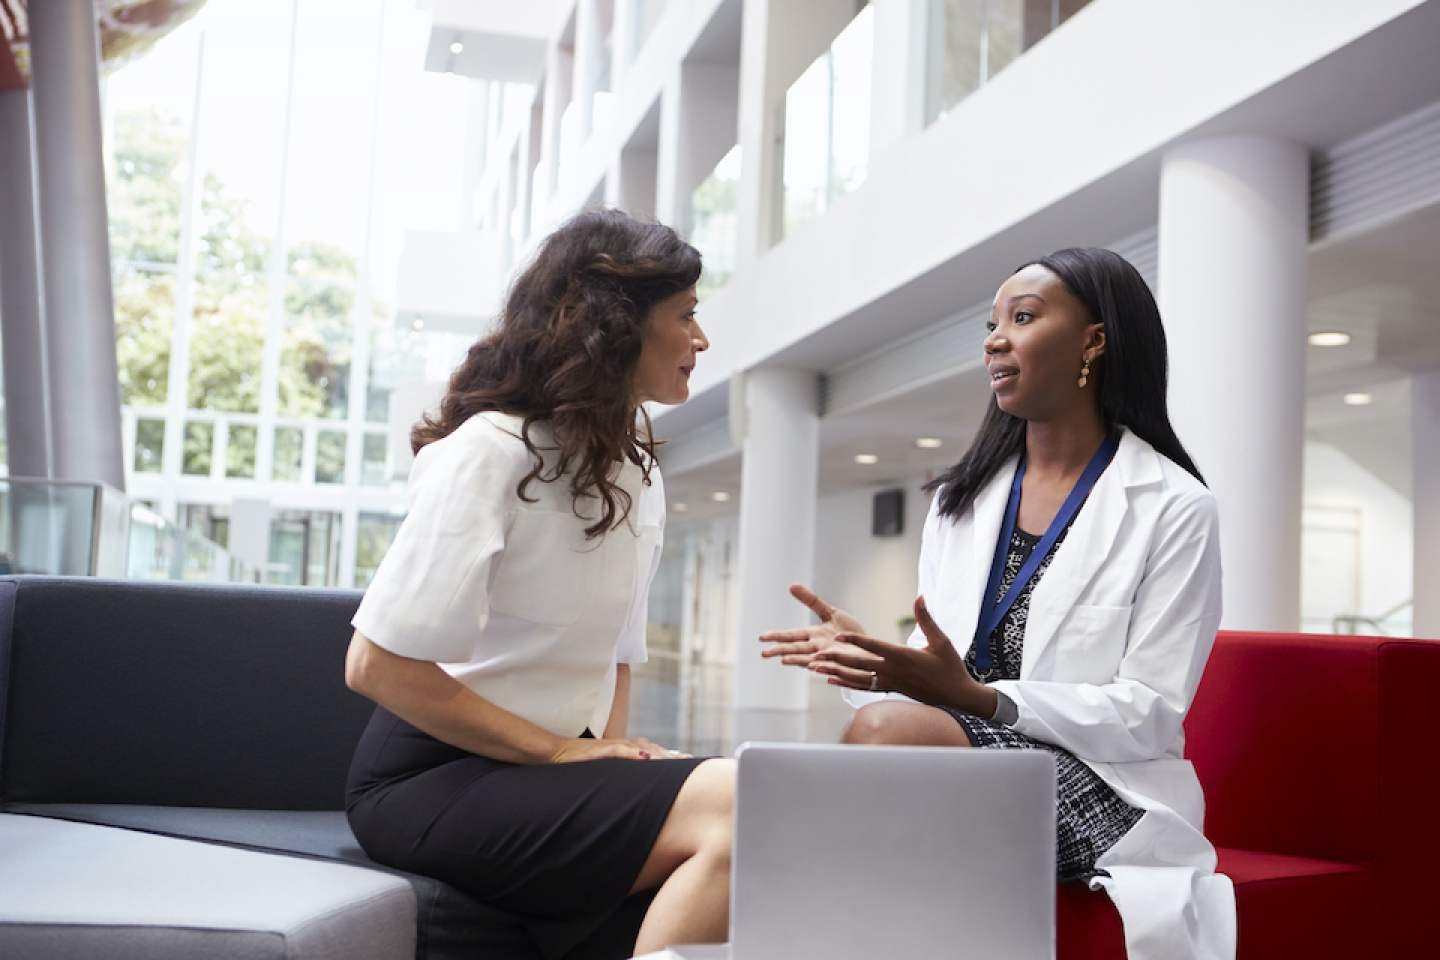 female doctor meets with female patient